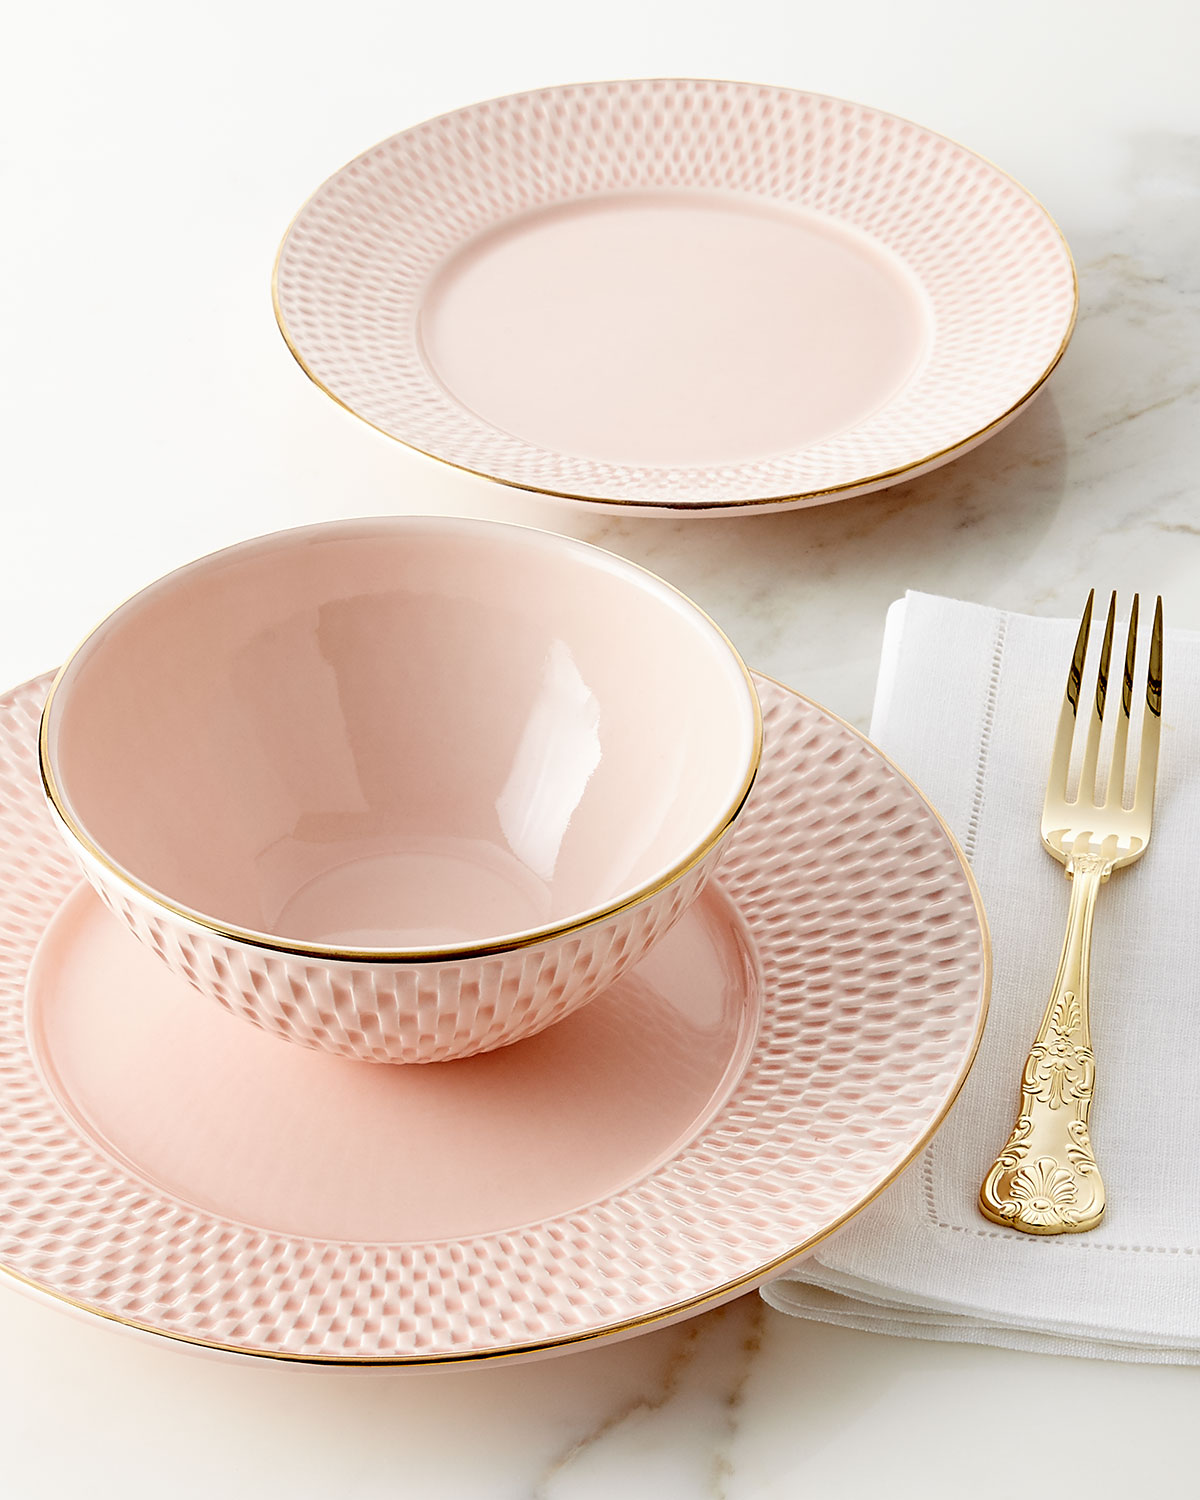 Neiman Marcus Pink Home Decor Ebth: 12-Piece Pink Basketweave Dinnerware Service